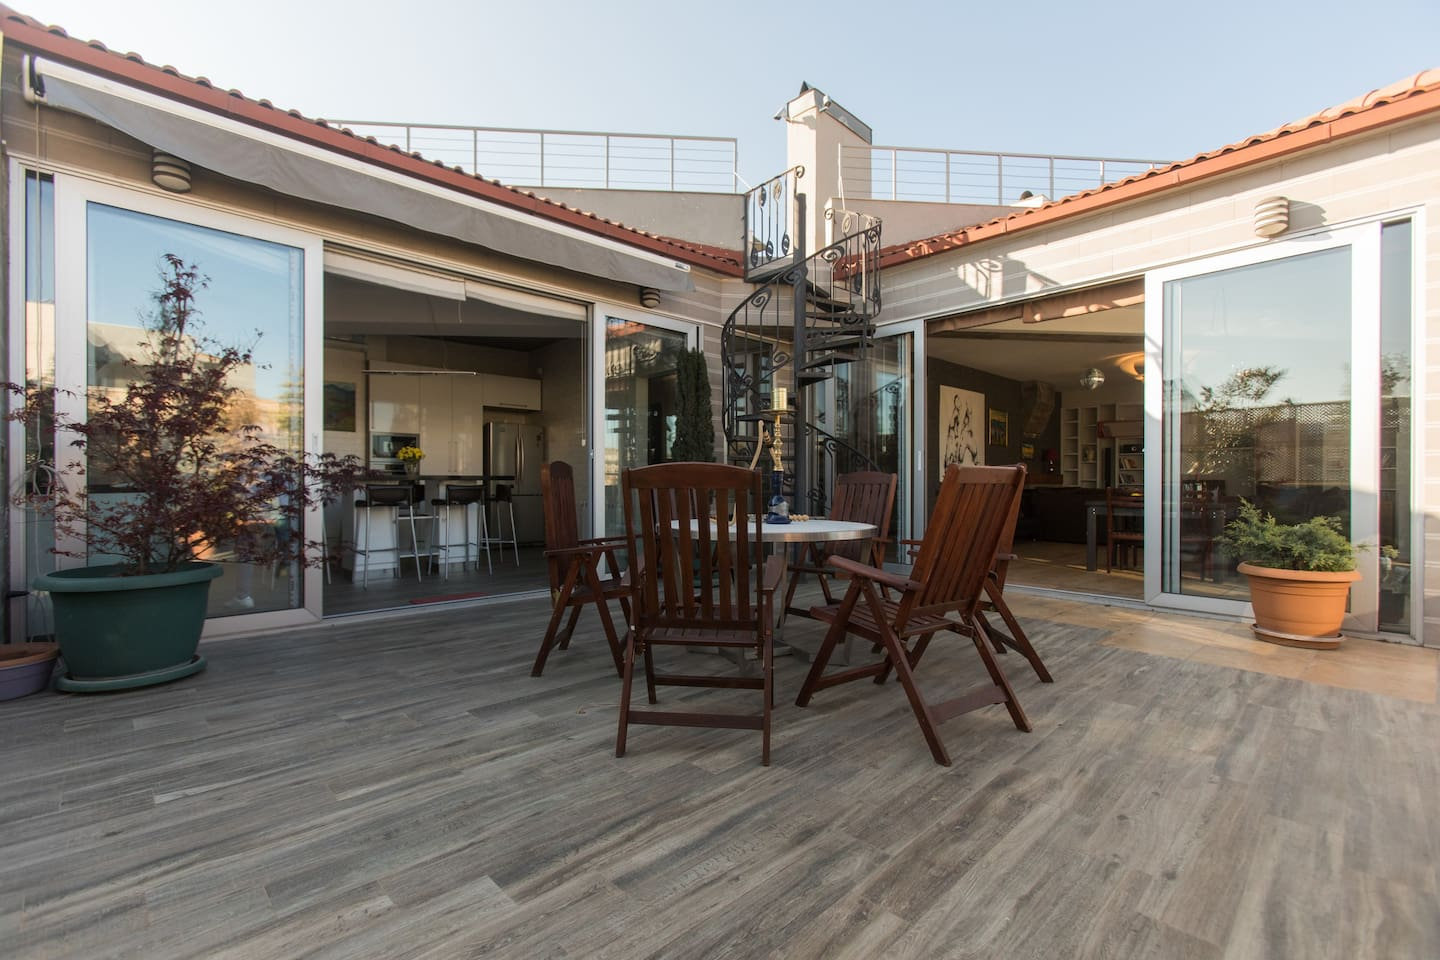 Terrace where you can have family gatherings or enjoy a cup of tea or a glass of wine in the evening;